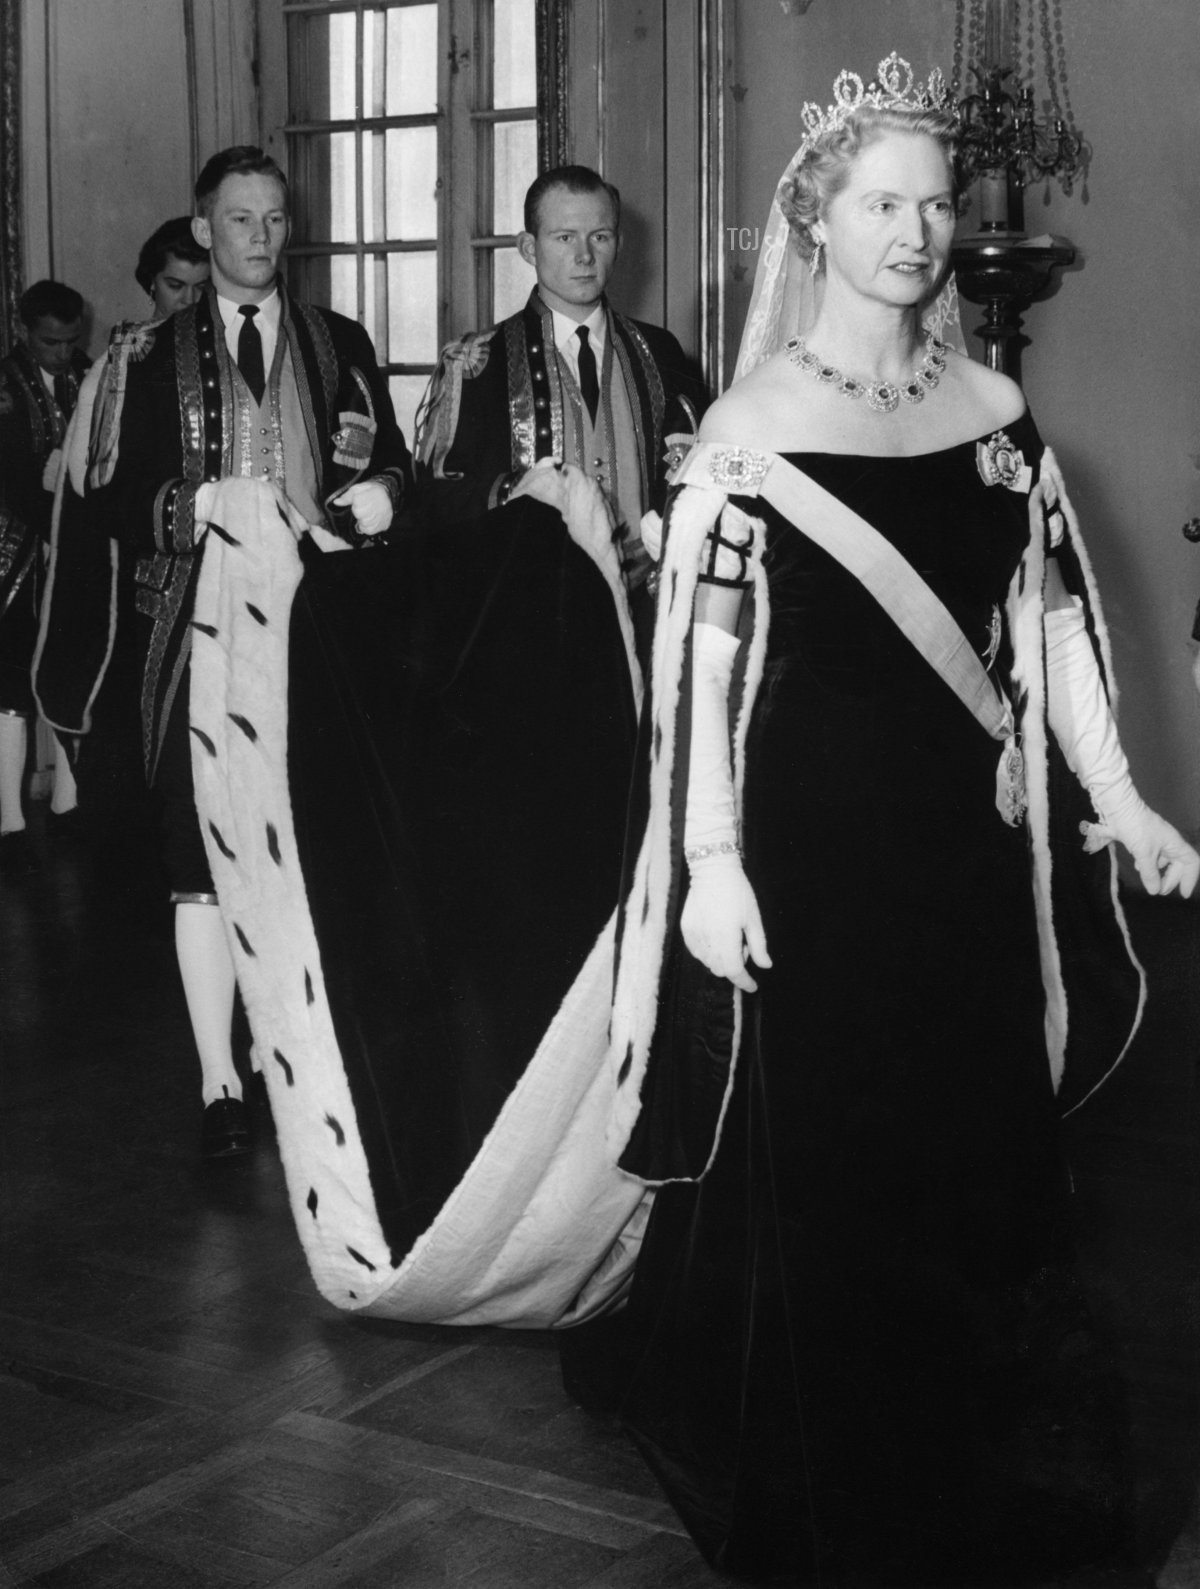 Opening of the Swedish Riksdag (Parliament), Stockholm, Sweden, 1957. Princess Sibylla (1908-1972) on her way to the hall in the royal castle